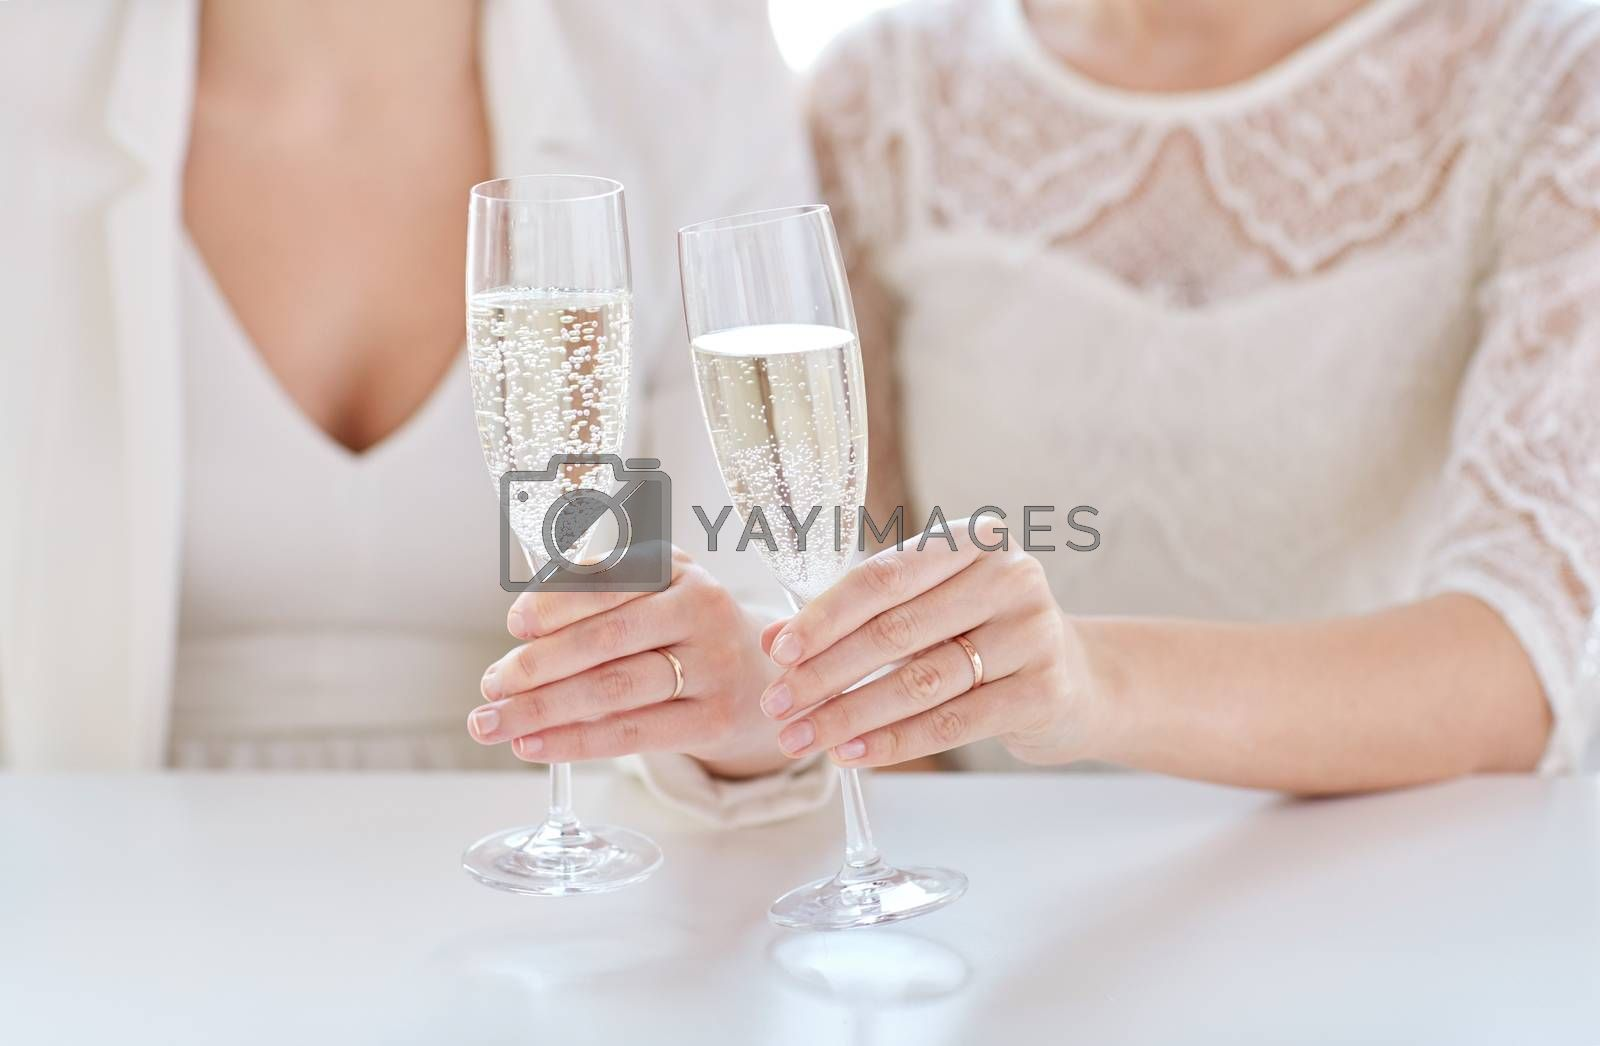 people, homosexuality, same-sex marriage, celebration and love concept - close up of happy married lesbian couple hands holding champagne glasses